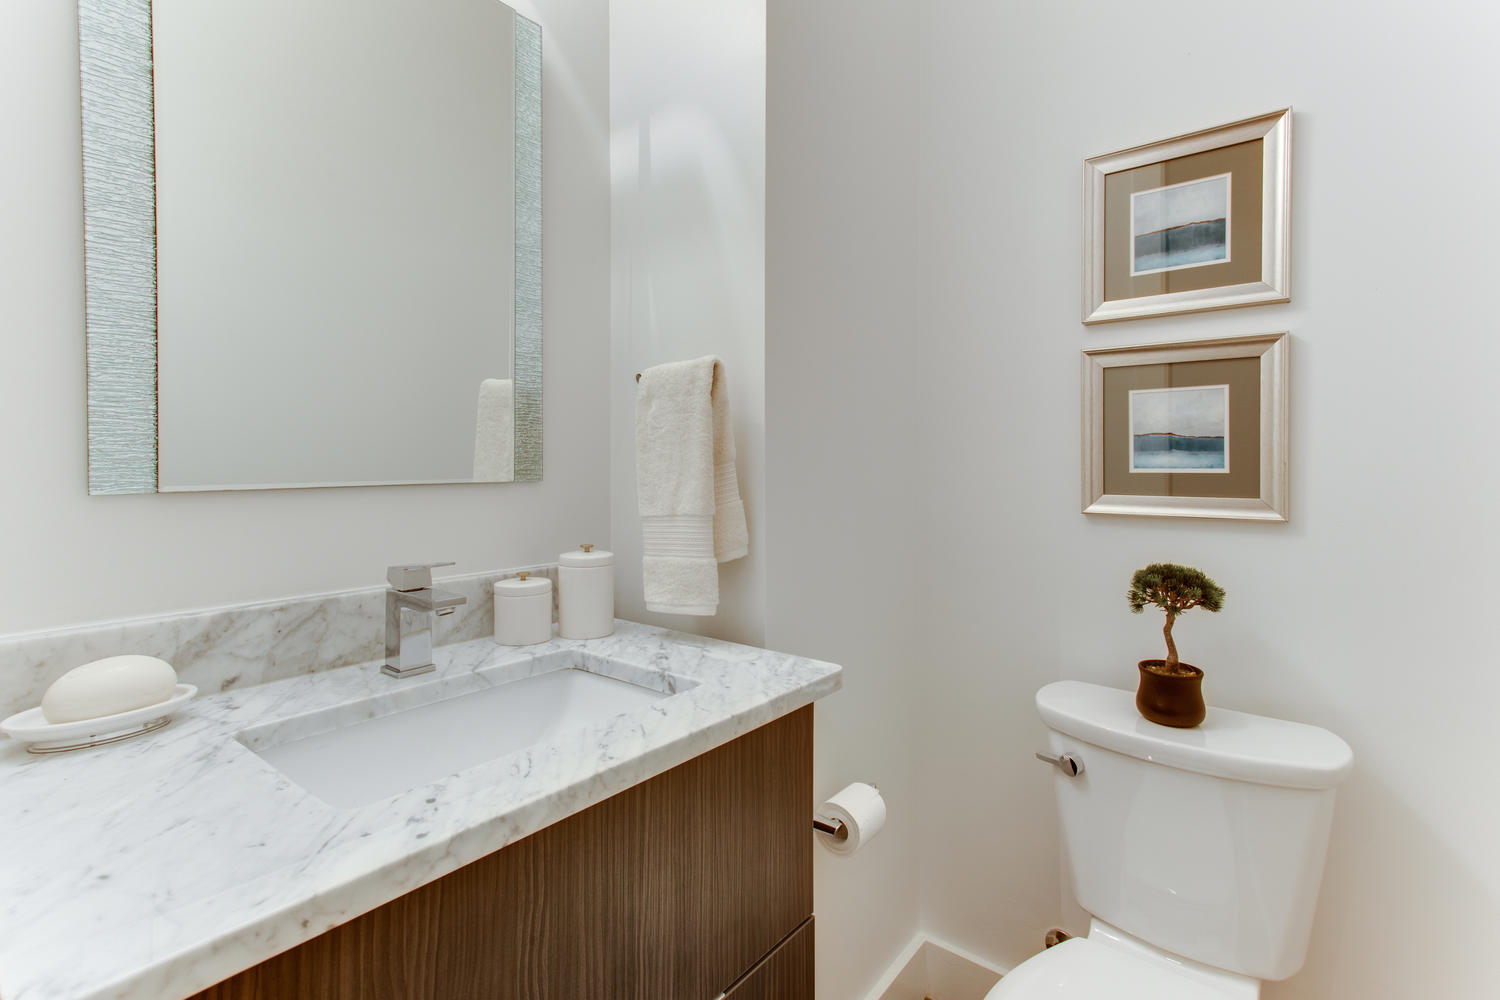 1524 Ogden St NW Unit 2-large-025-26-Bathroom-1500x1000-72dpi.jpg